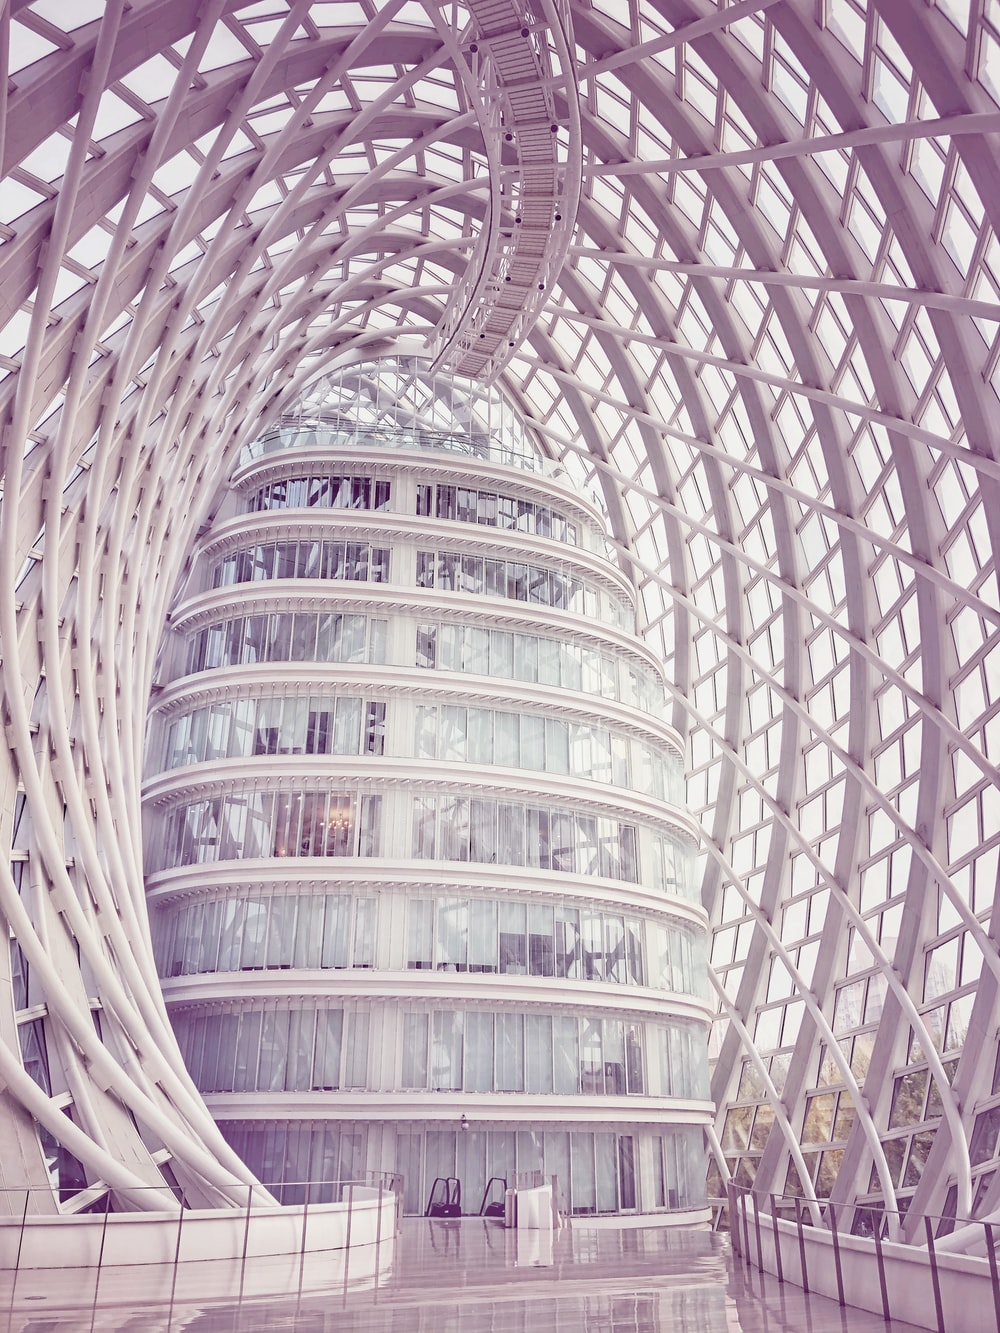 interior view of glass building inside metal frame dome